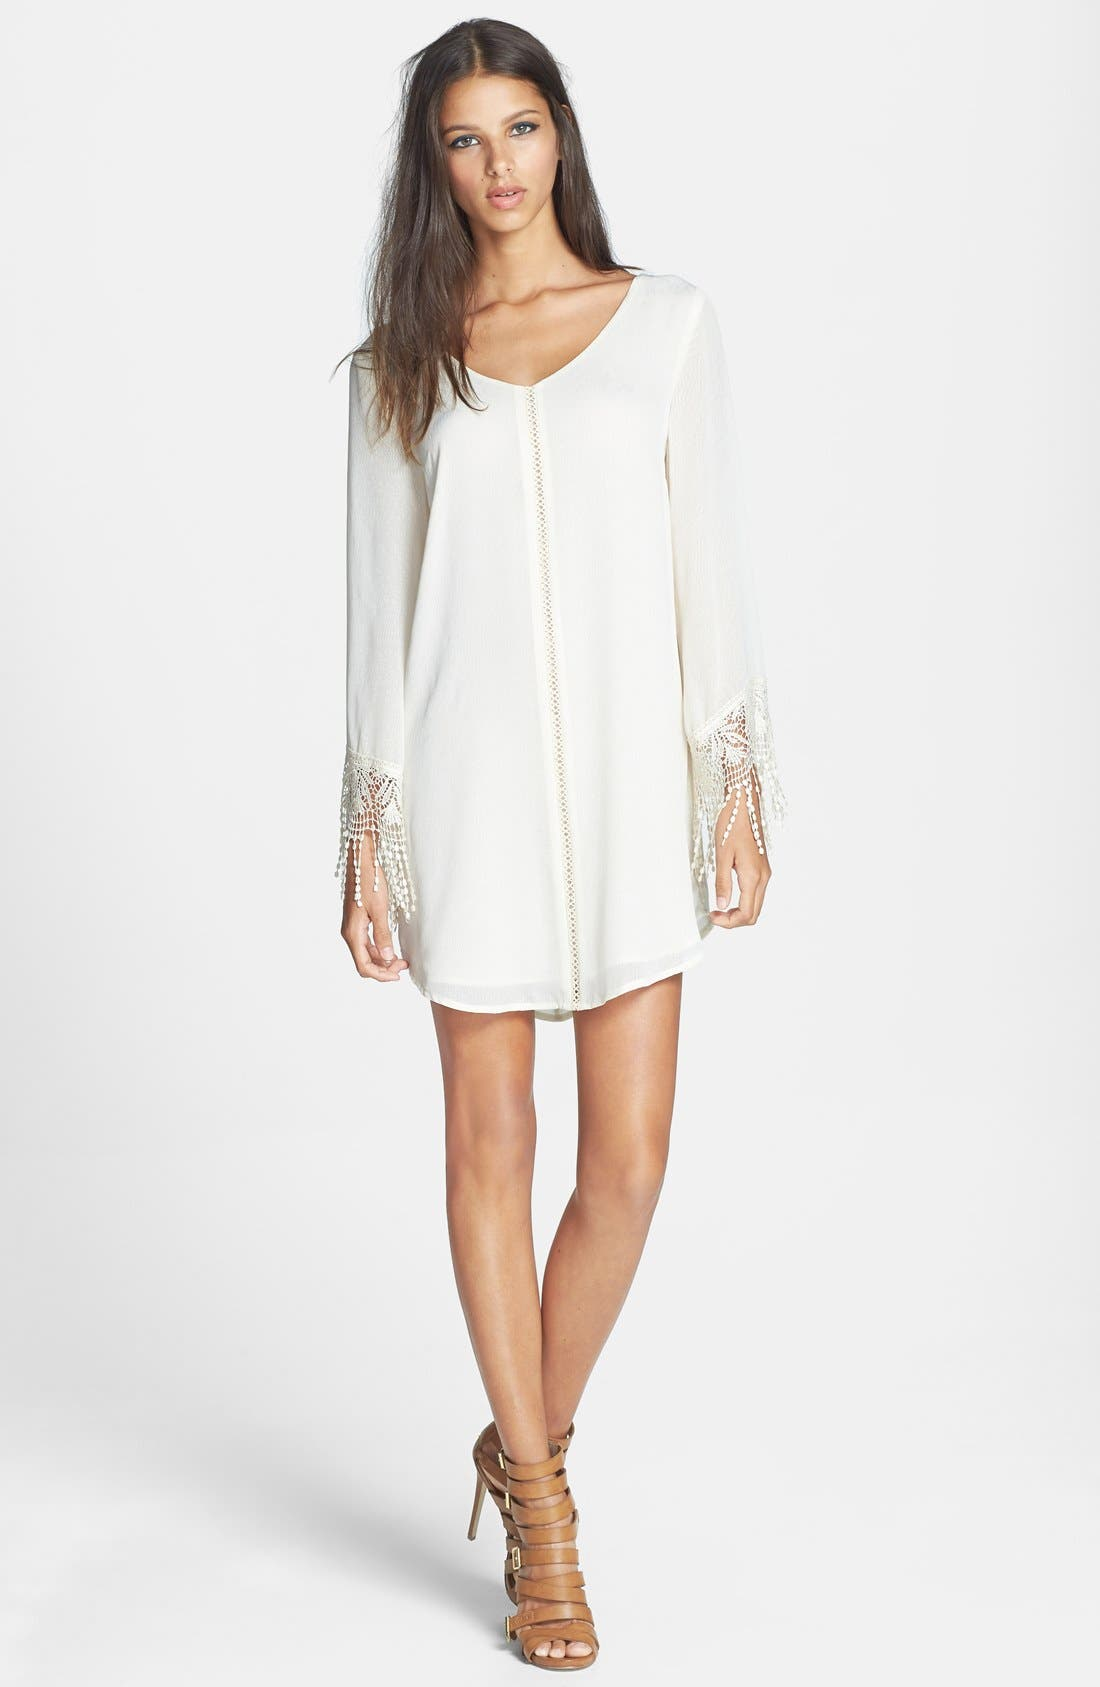 Alternate Image 1 Selected - ASTR Crochet Cuff Jacquard Shift Dress